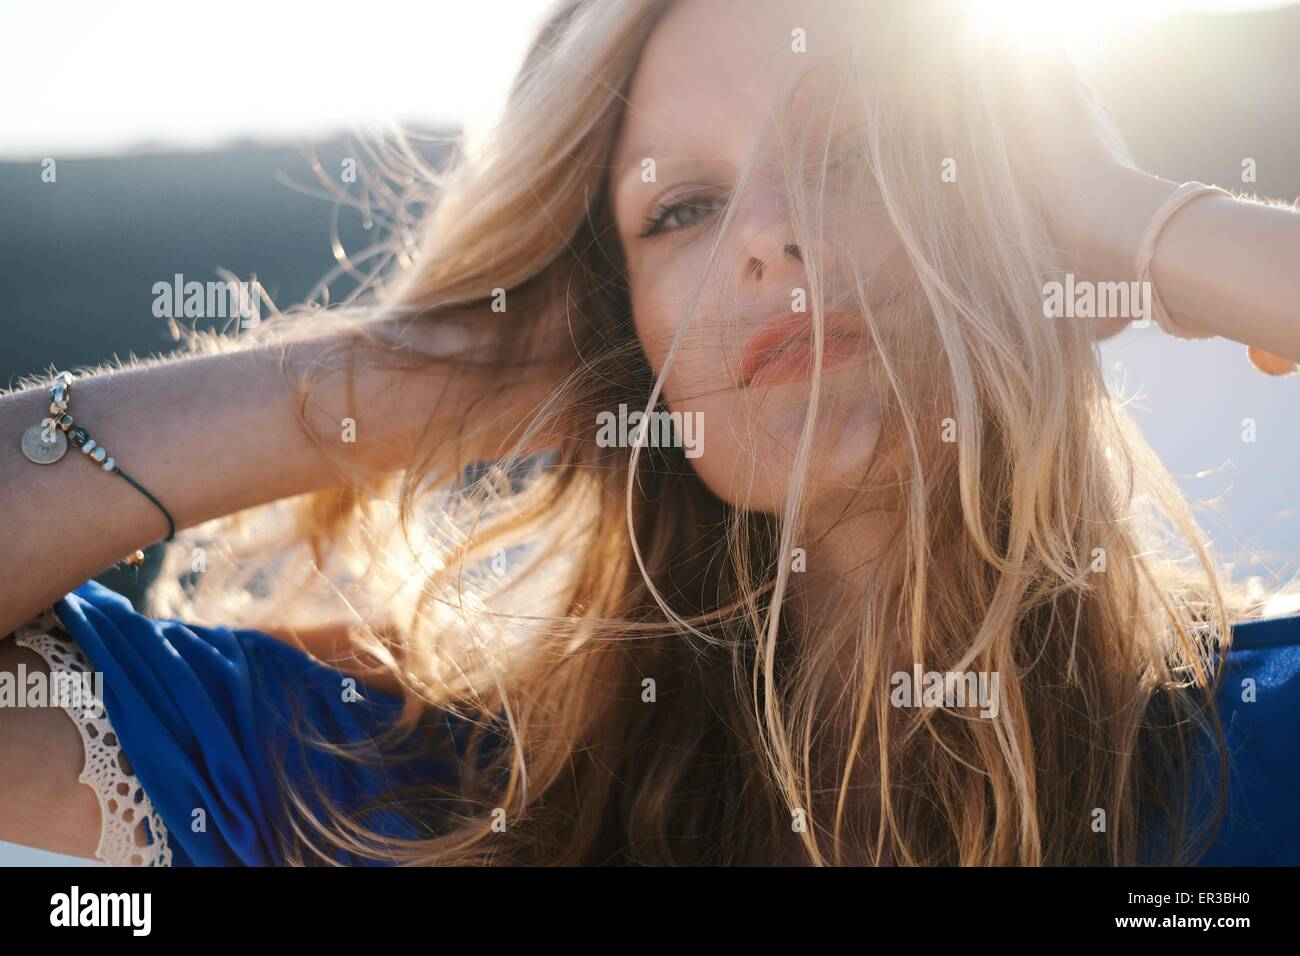 Woman running her hands through her hair - Stock Image